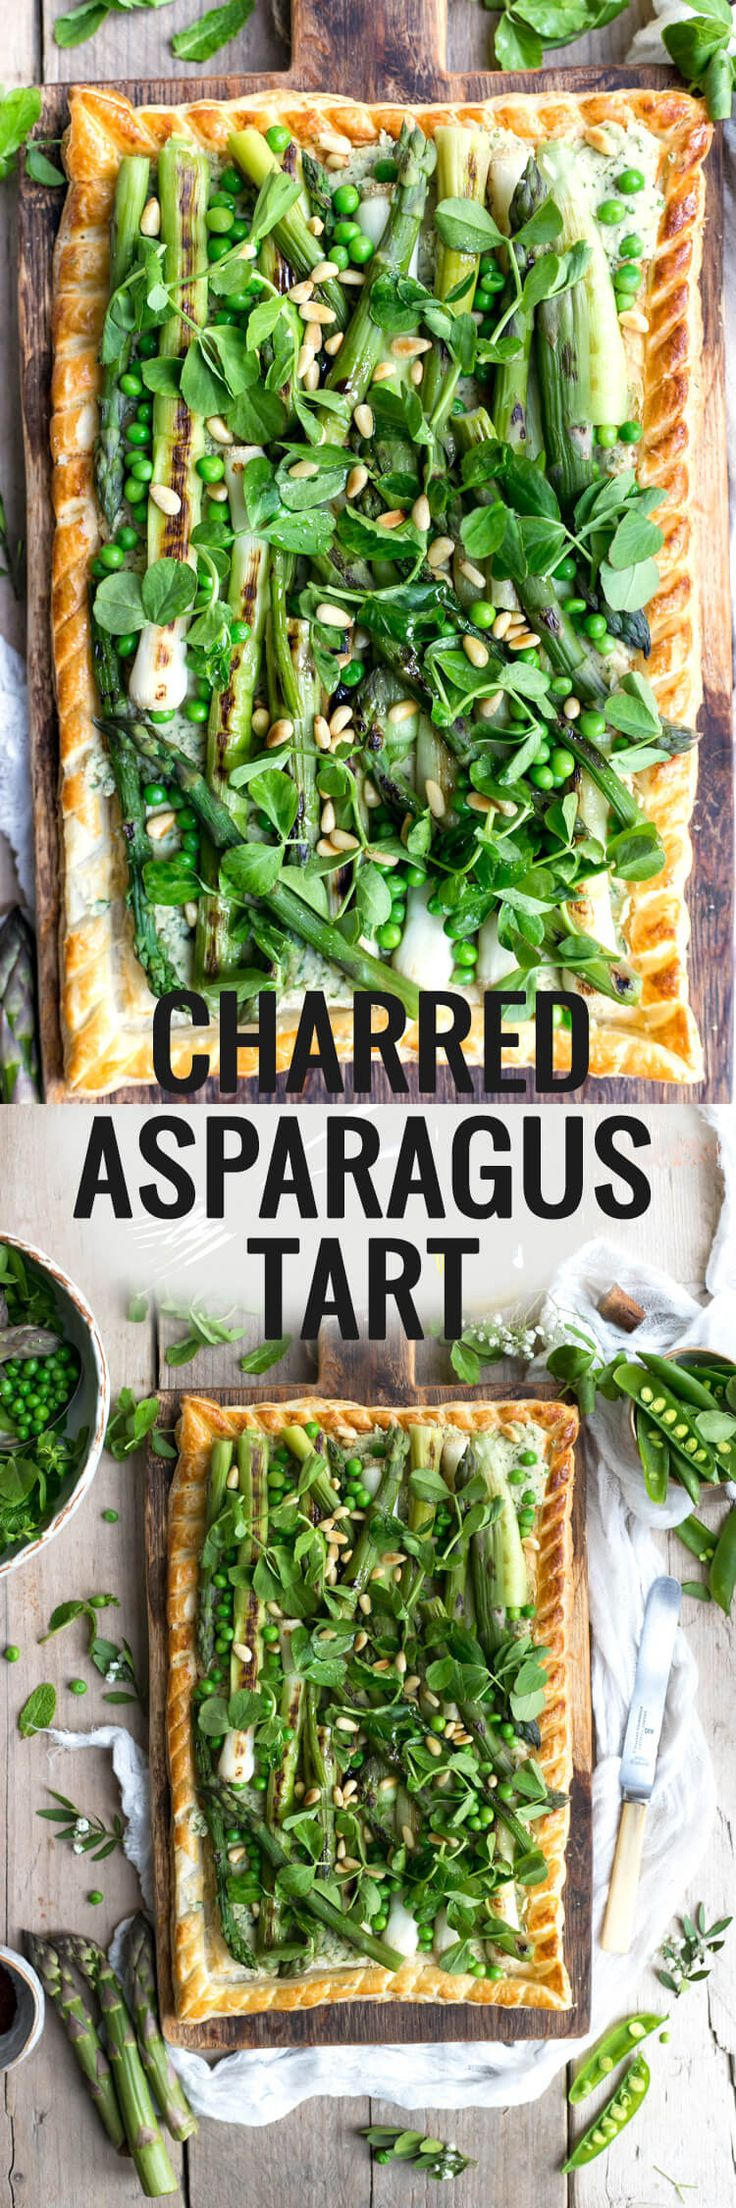 Charred Asparagus Tart with baby leeks, pea shoots and butter bean paste | via @annabanana.co